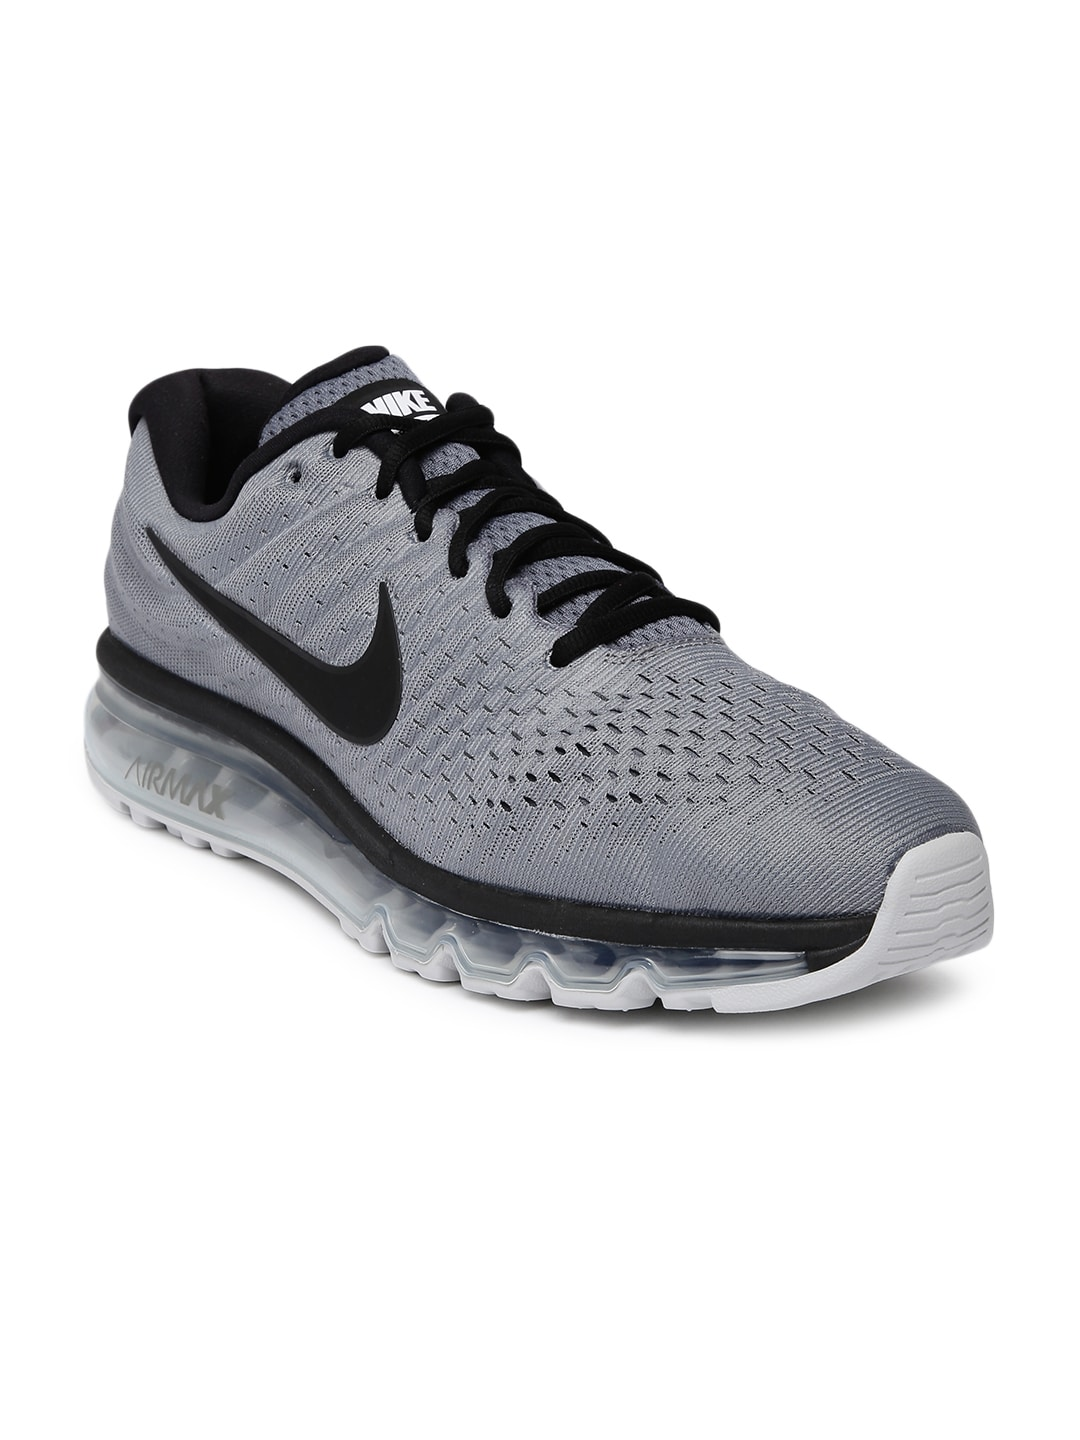 9321c91df734 Nike Air Grey Shoes - Buy Nike Air Grey Shoes online in India